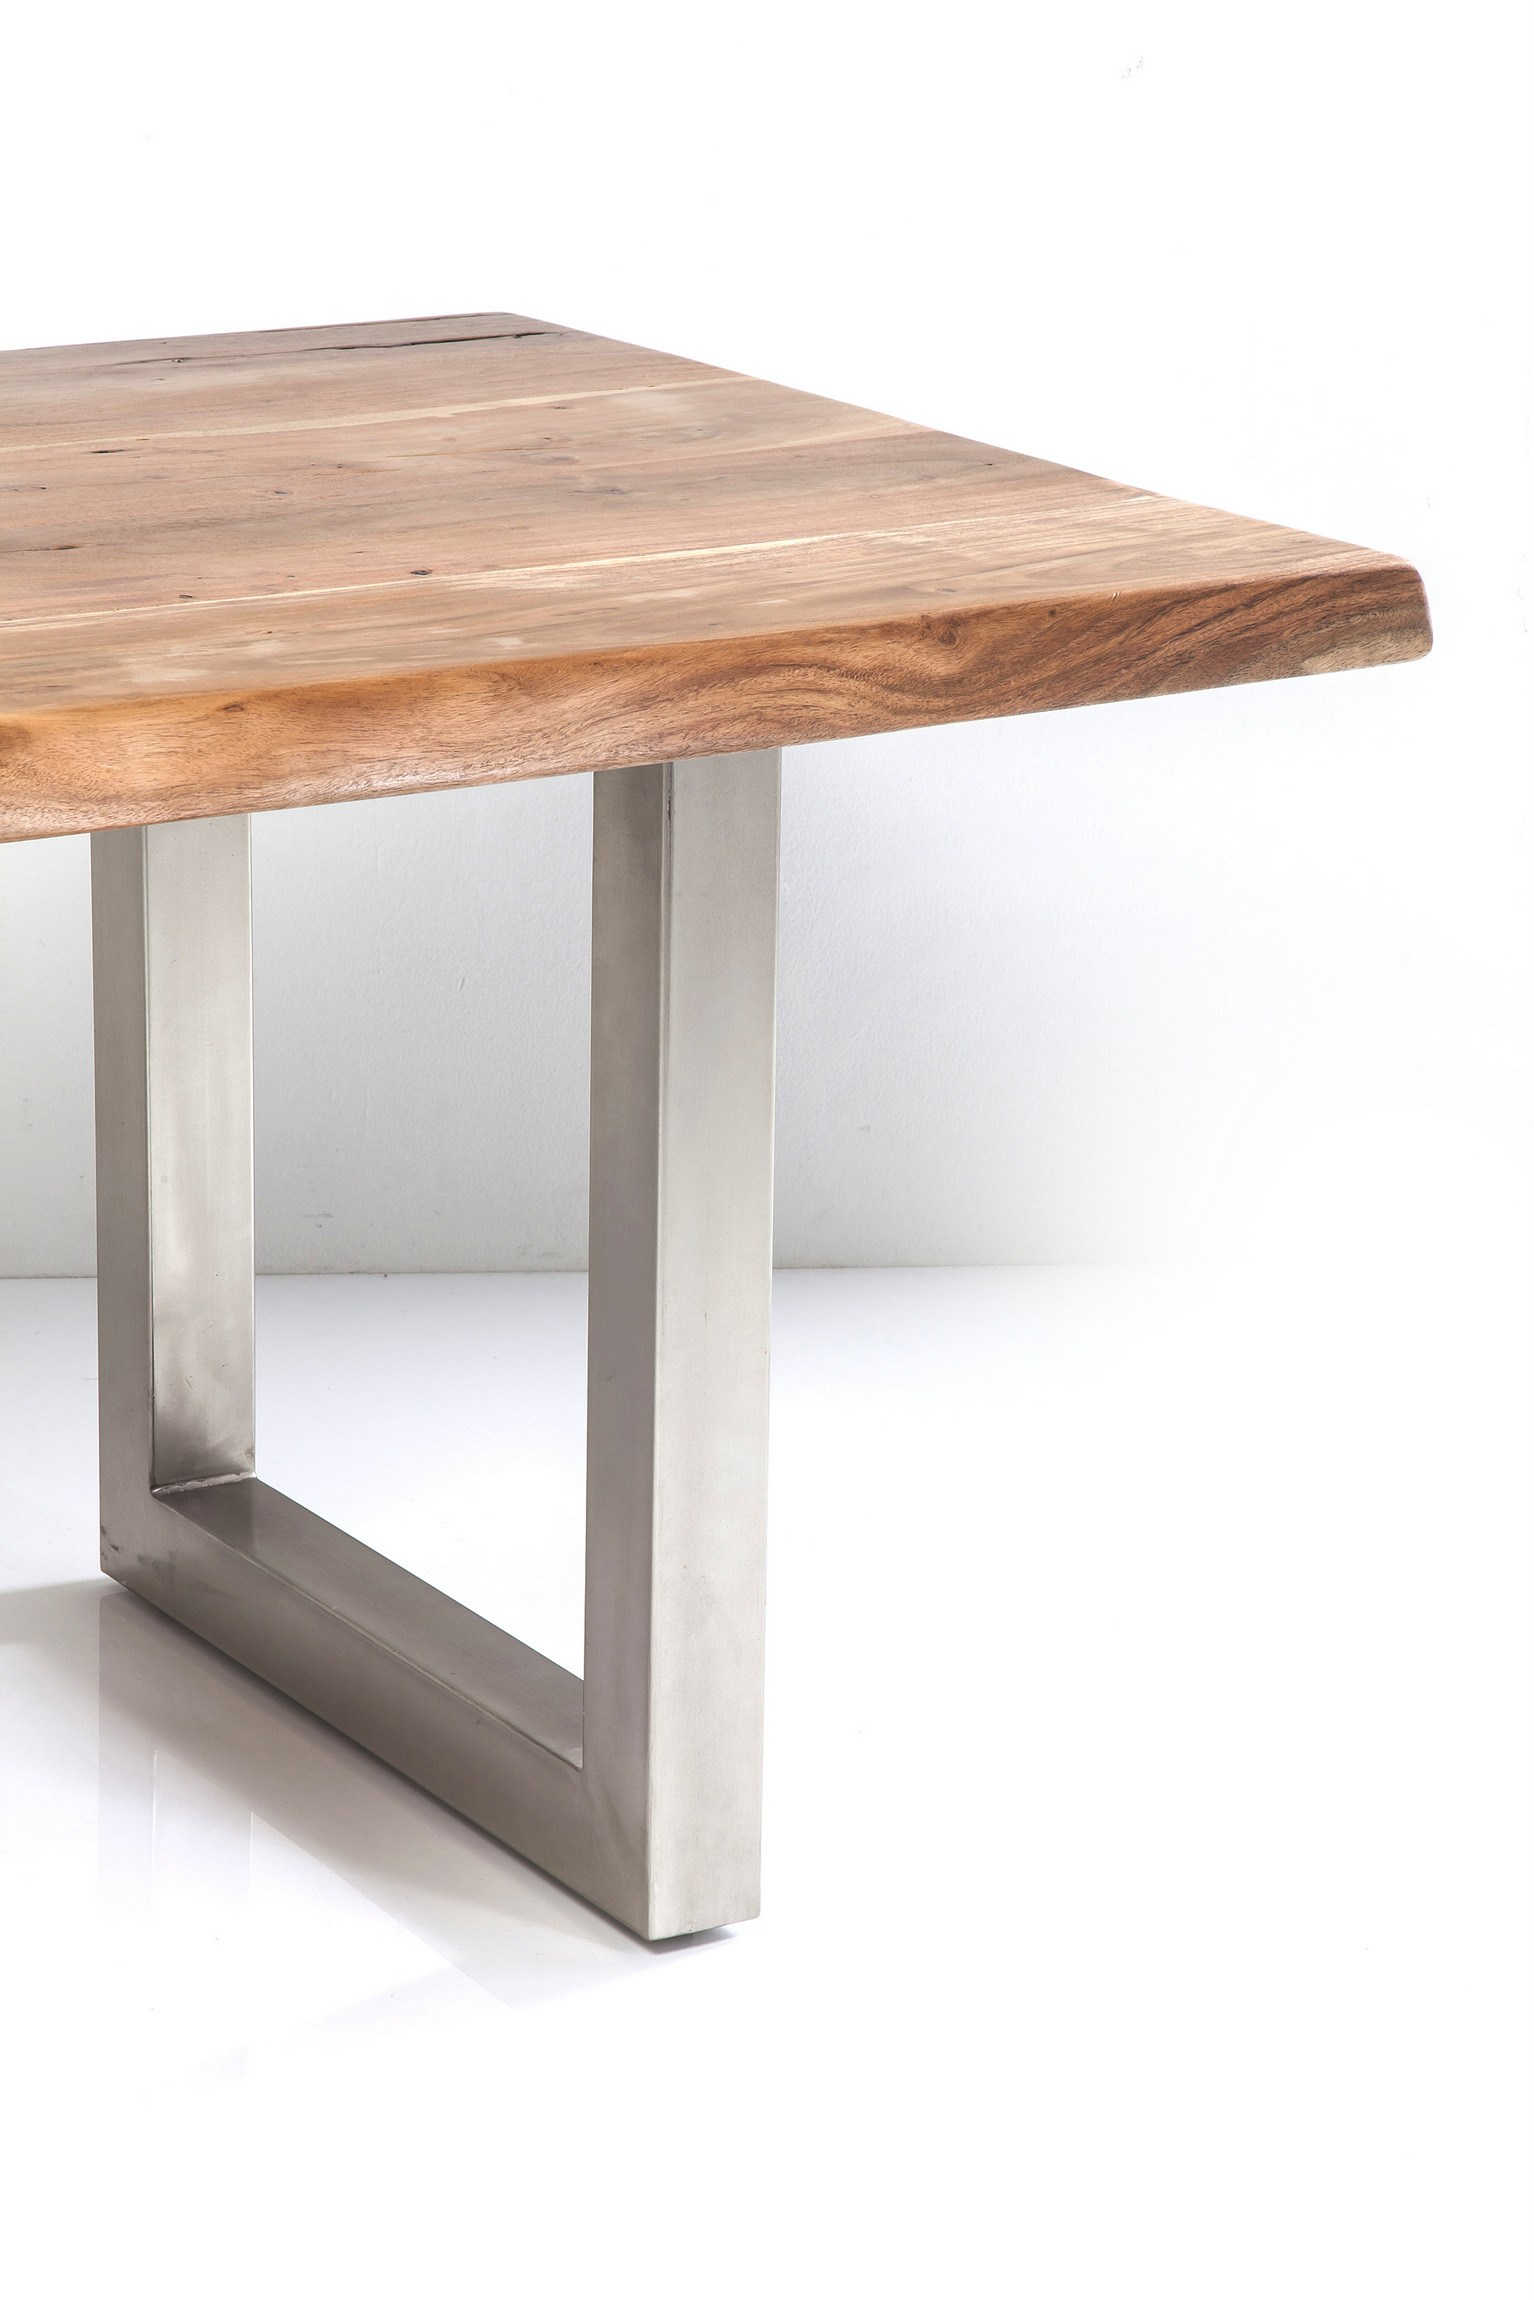 Rectangular Steel And Wood Table Pure Nature By Kare Design